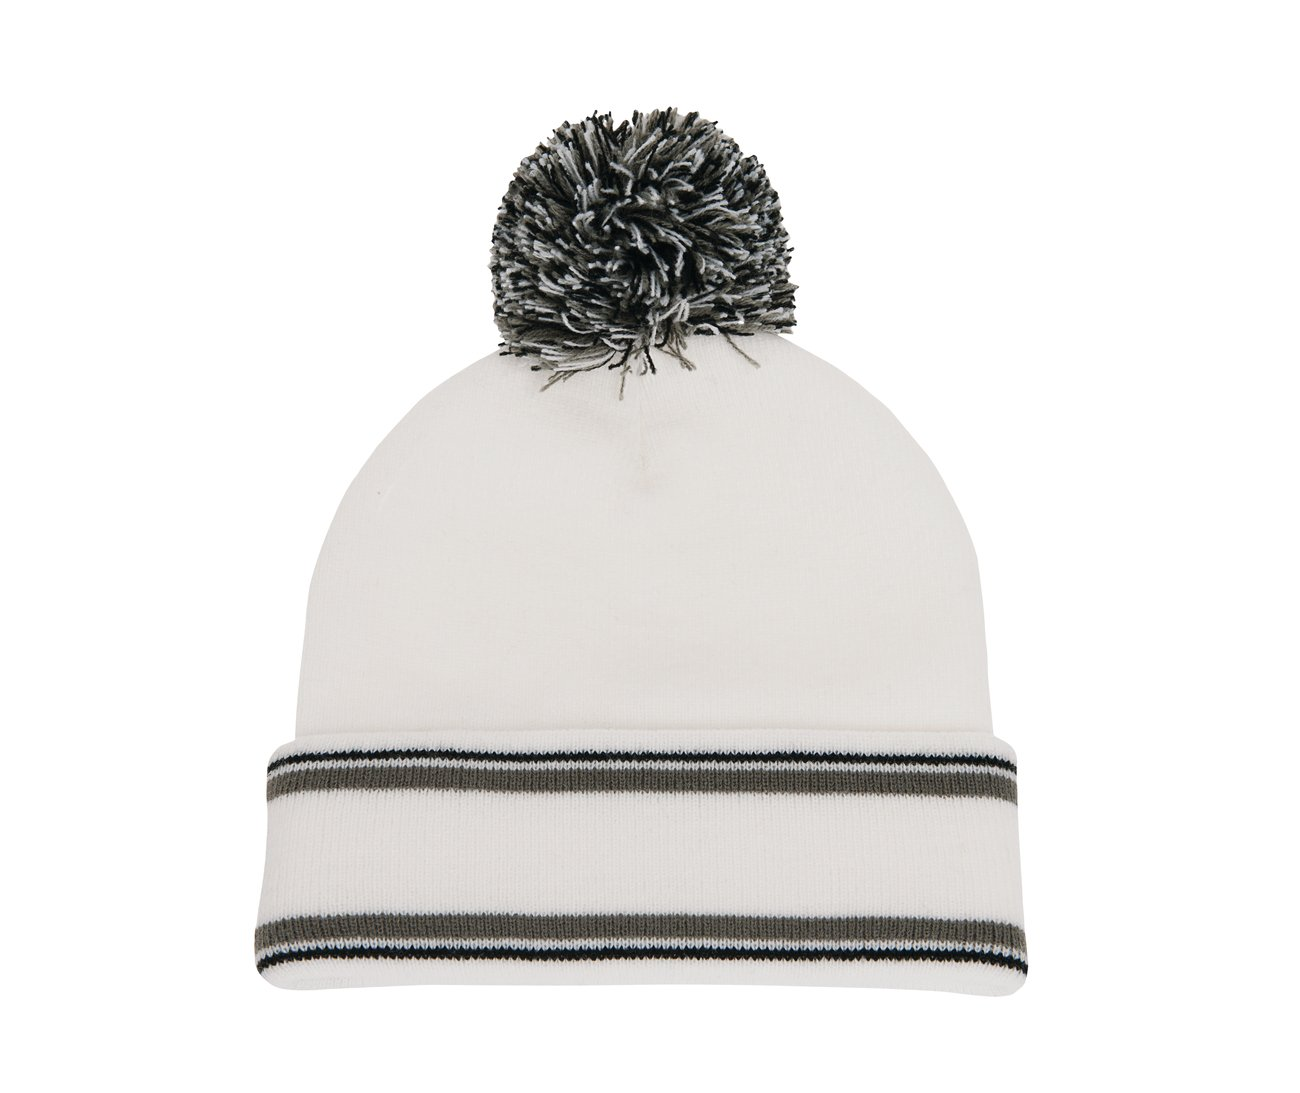 Callaway 2015 Weather Series Pom Pom Beanie Mens Golf Winter Bobble Hat  White  Amazon.co.uk  Sports   Outdoors 8c1742fed48b